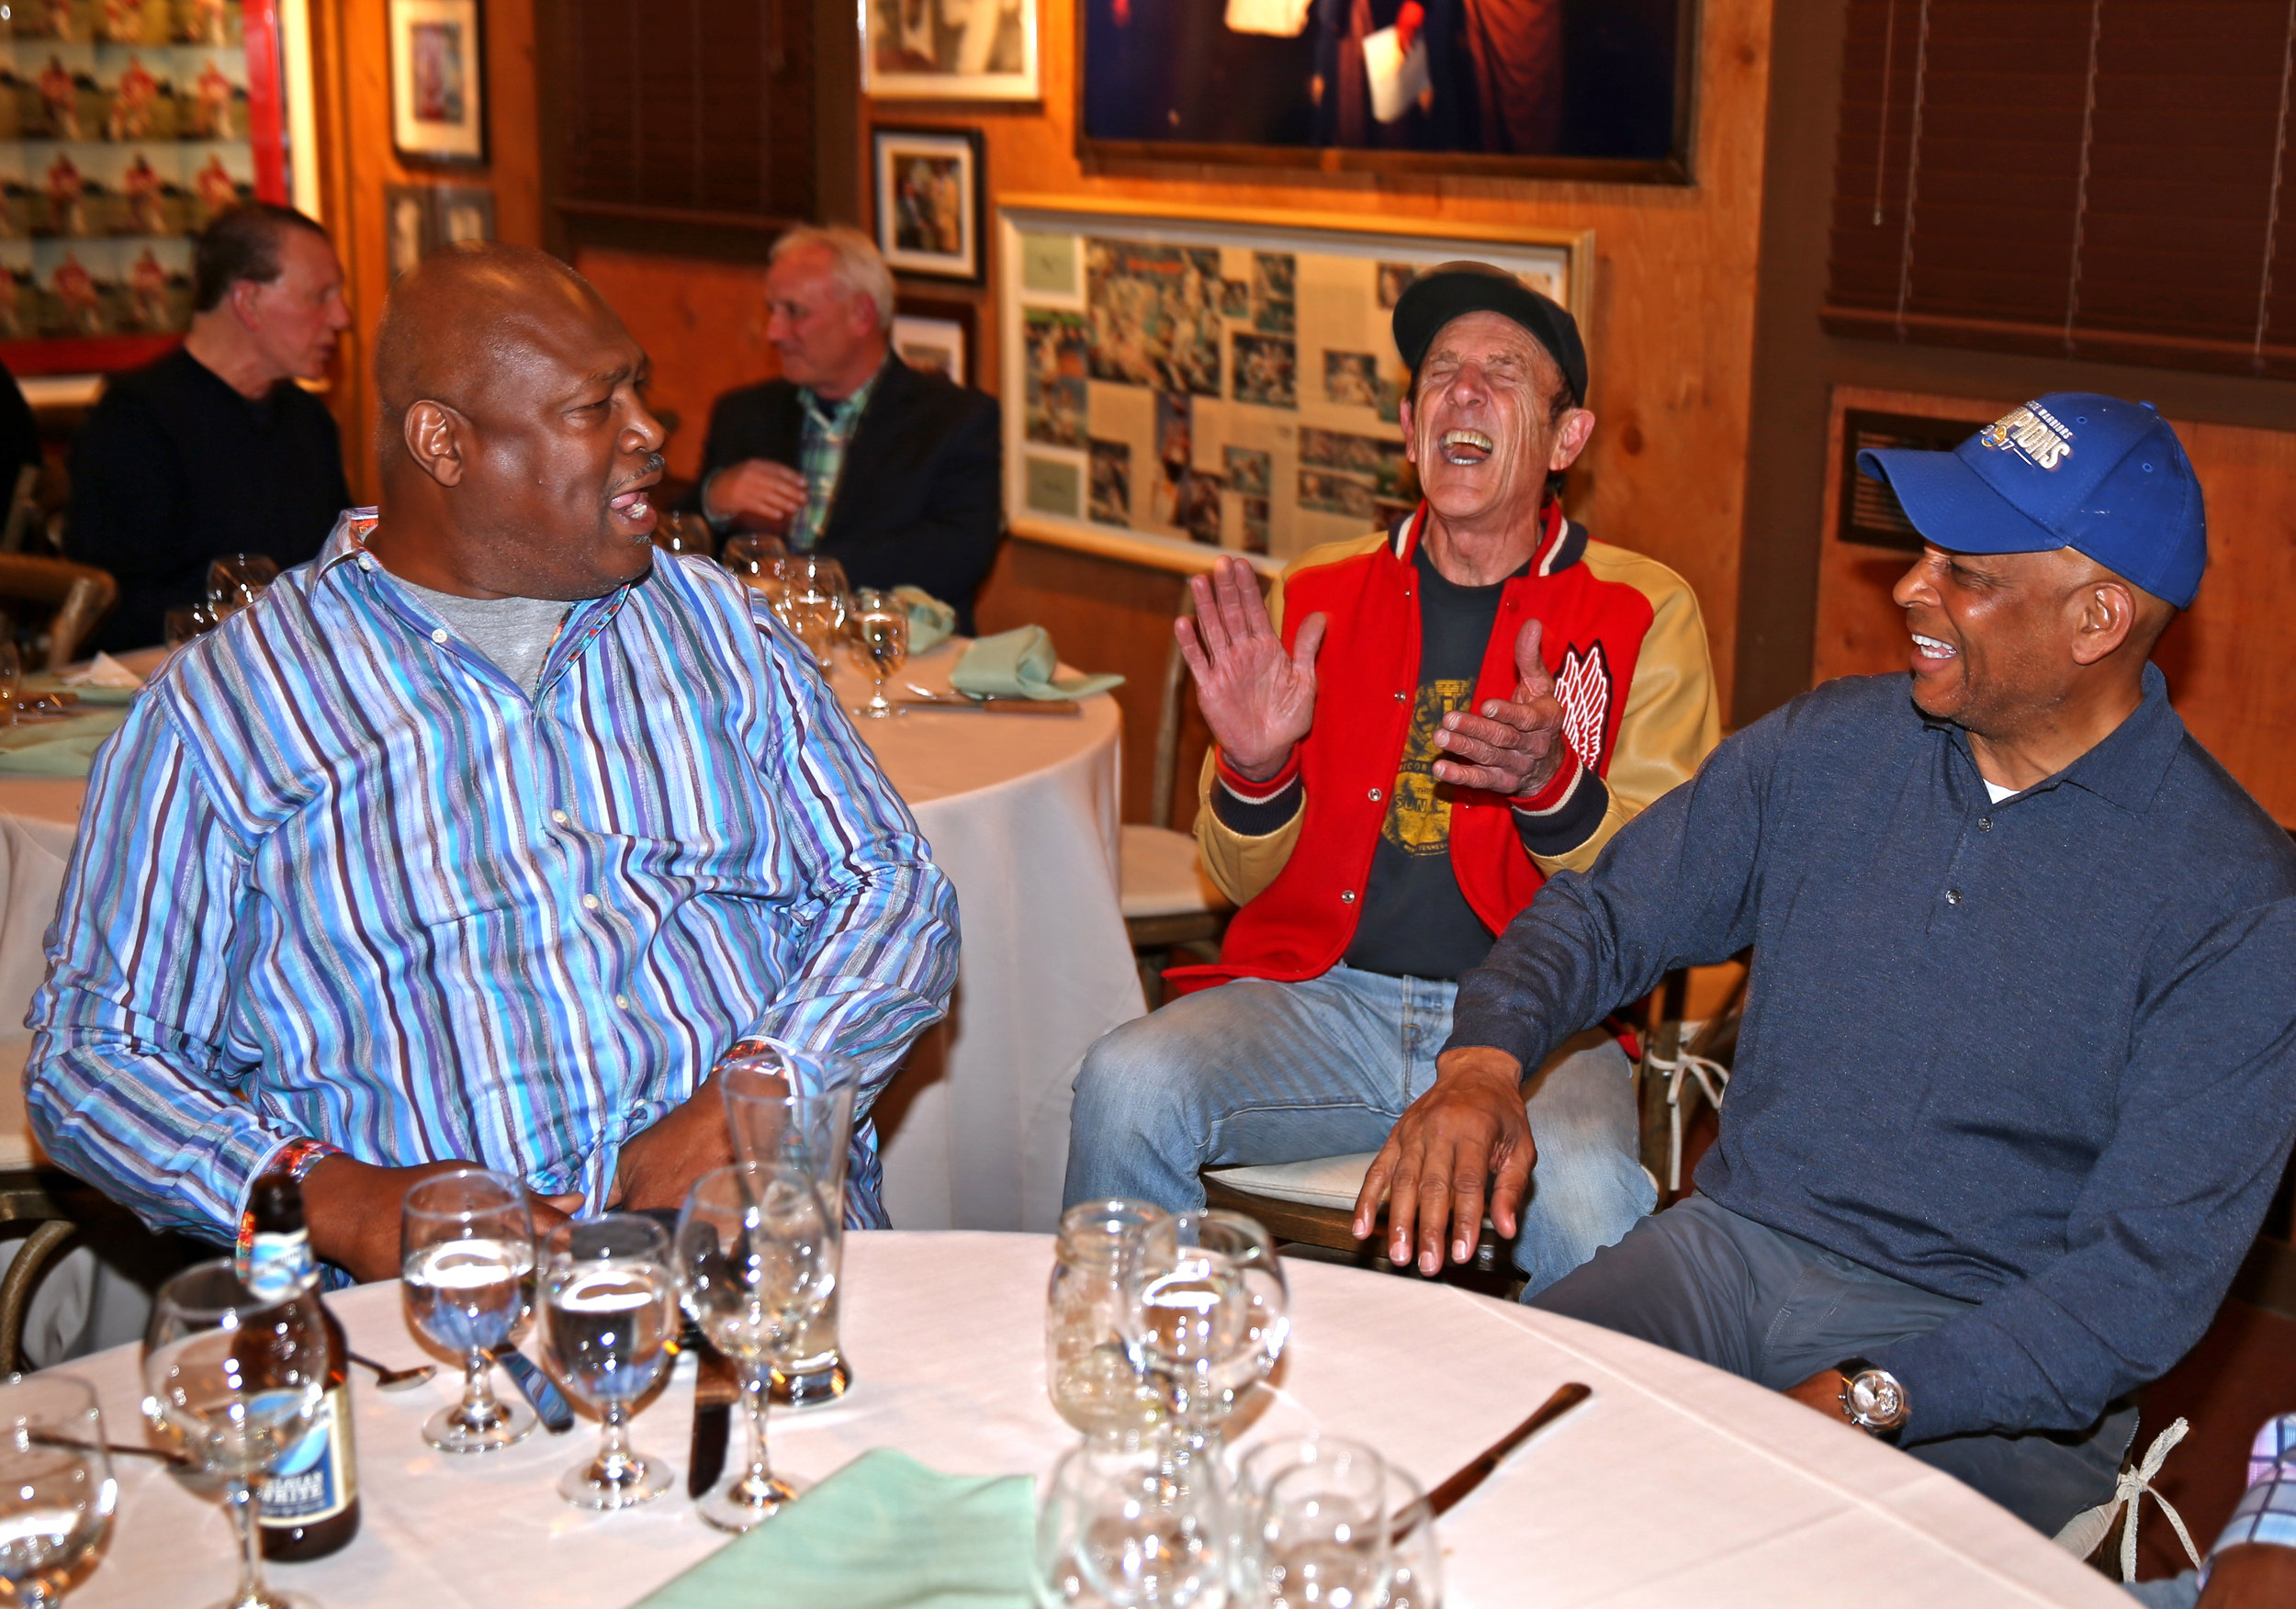 Charles Haley, Michael Zagaris, and Ronnie Lott laugh at the reunion organized by Eddie DeBartolo in Kalispell, Montana on April 23, 2018.